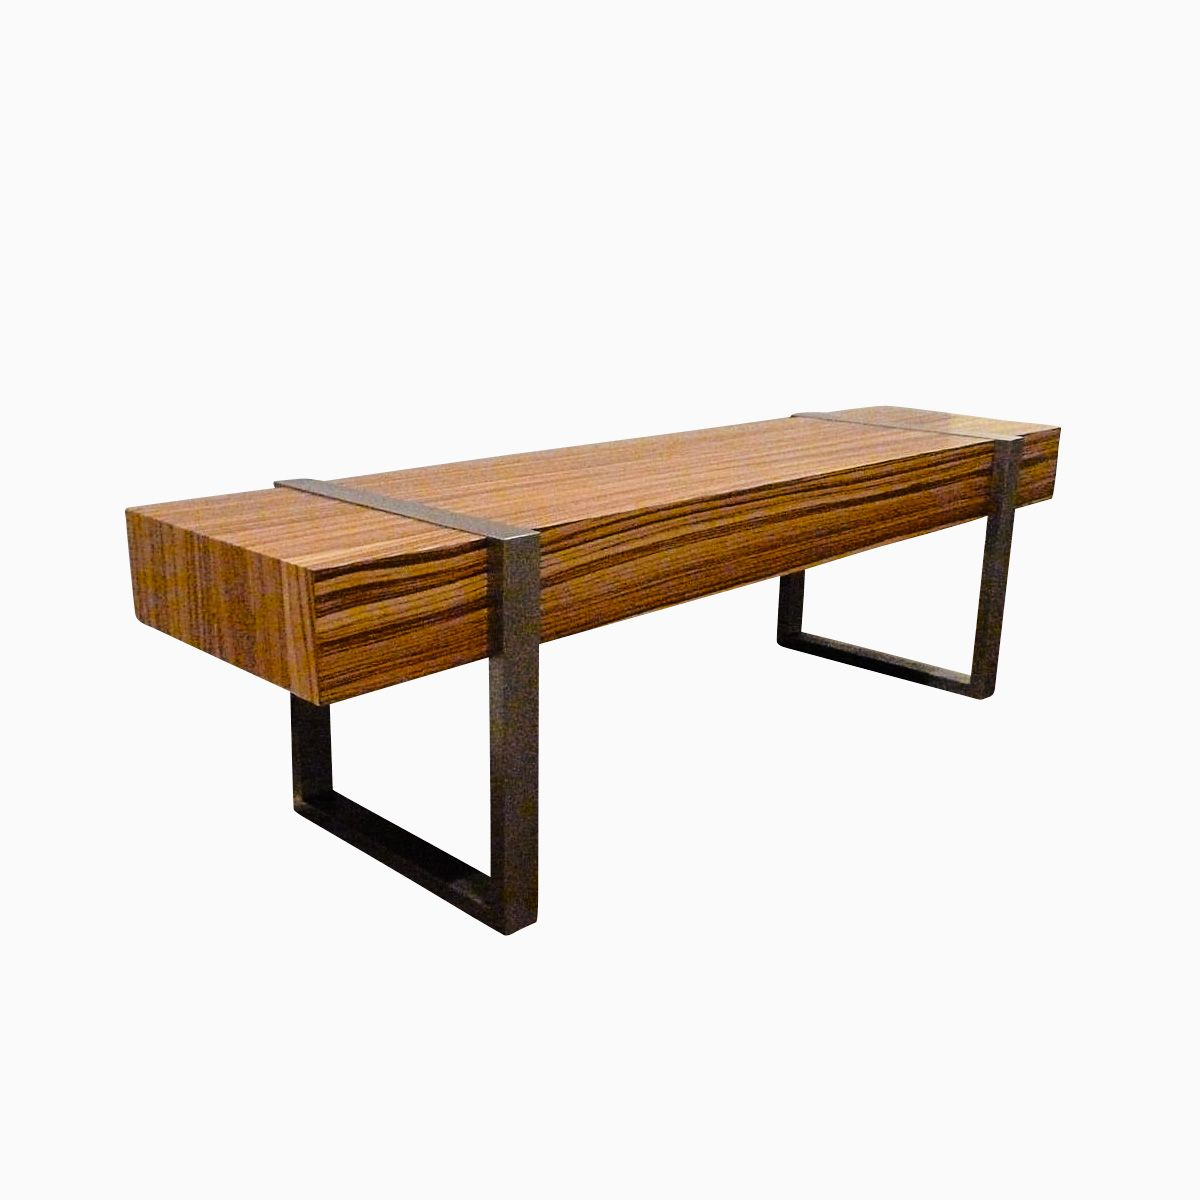 uncategorized pic and best concept fire bench benches outdoor wood modern small the for tfast inspiration pits